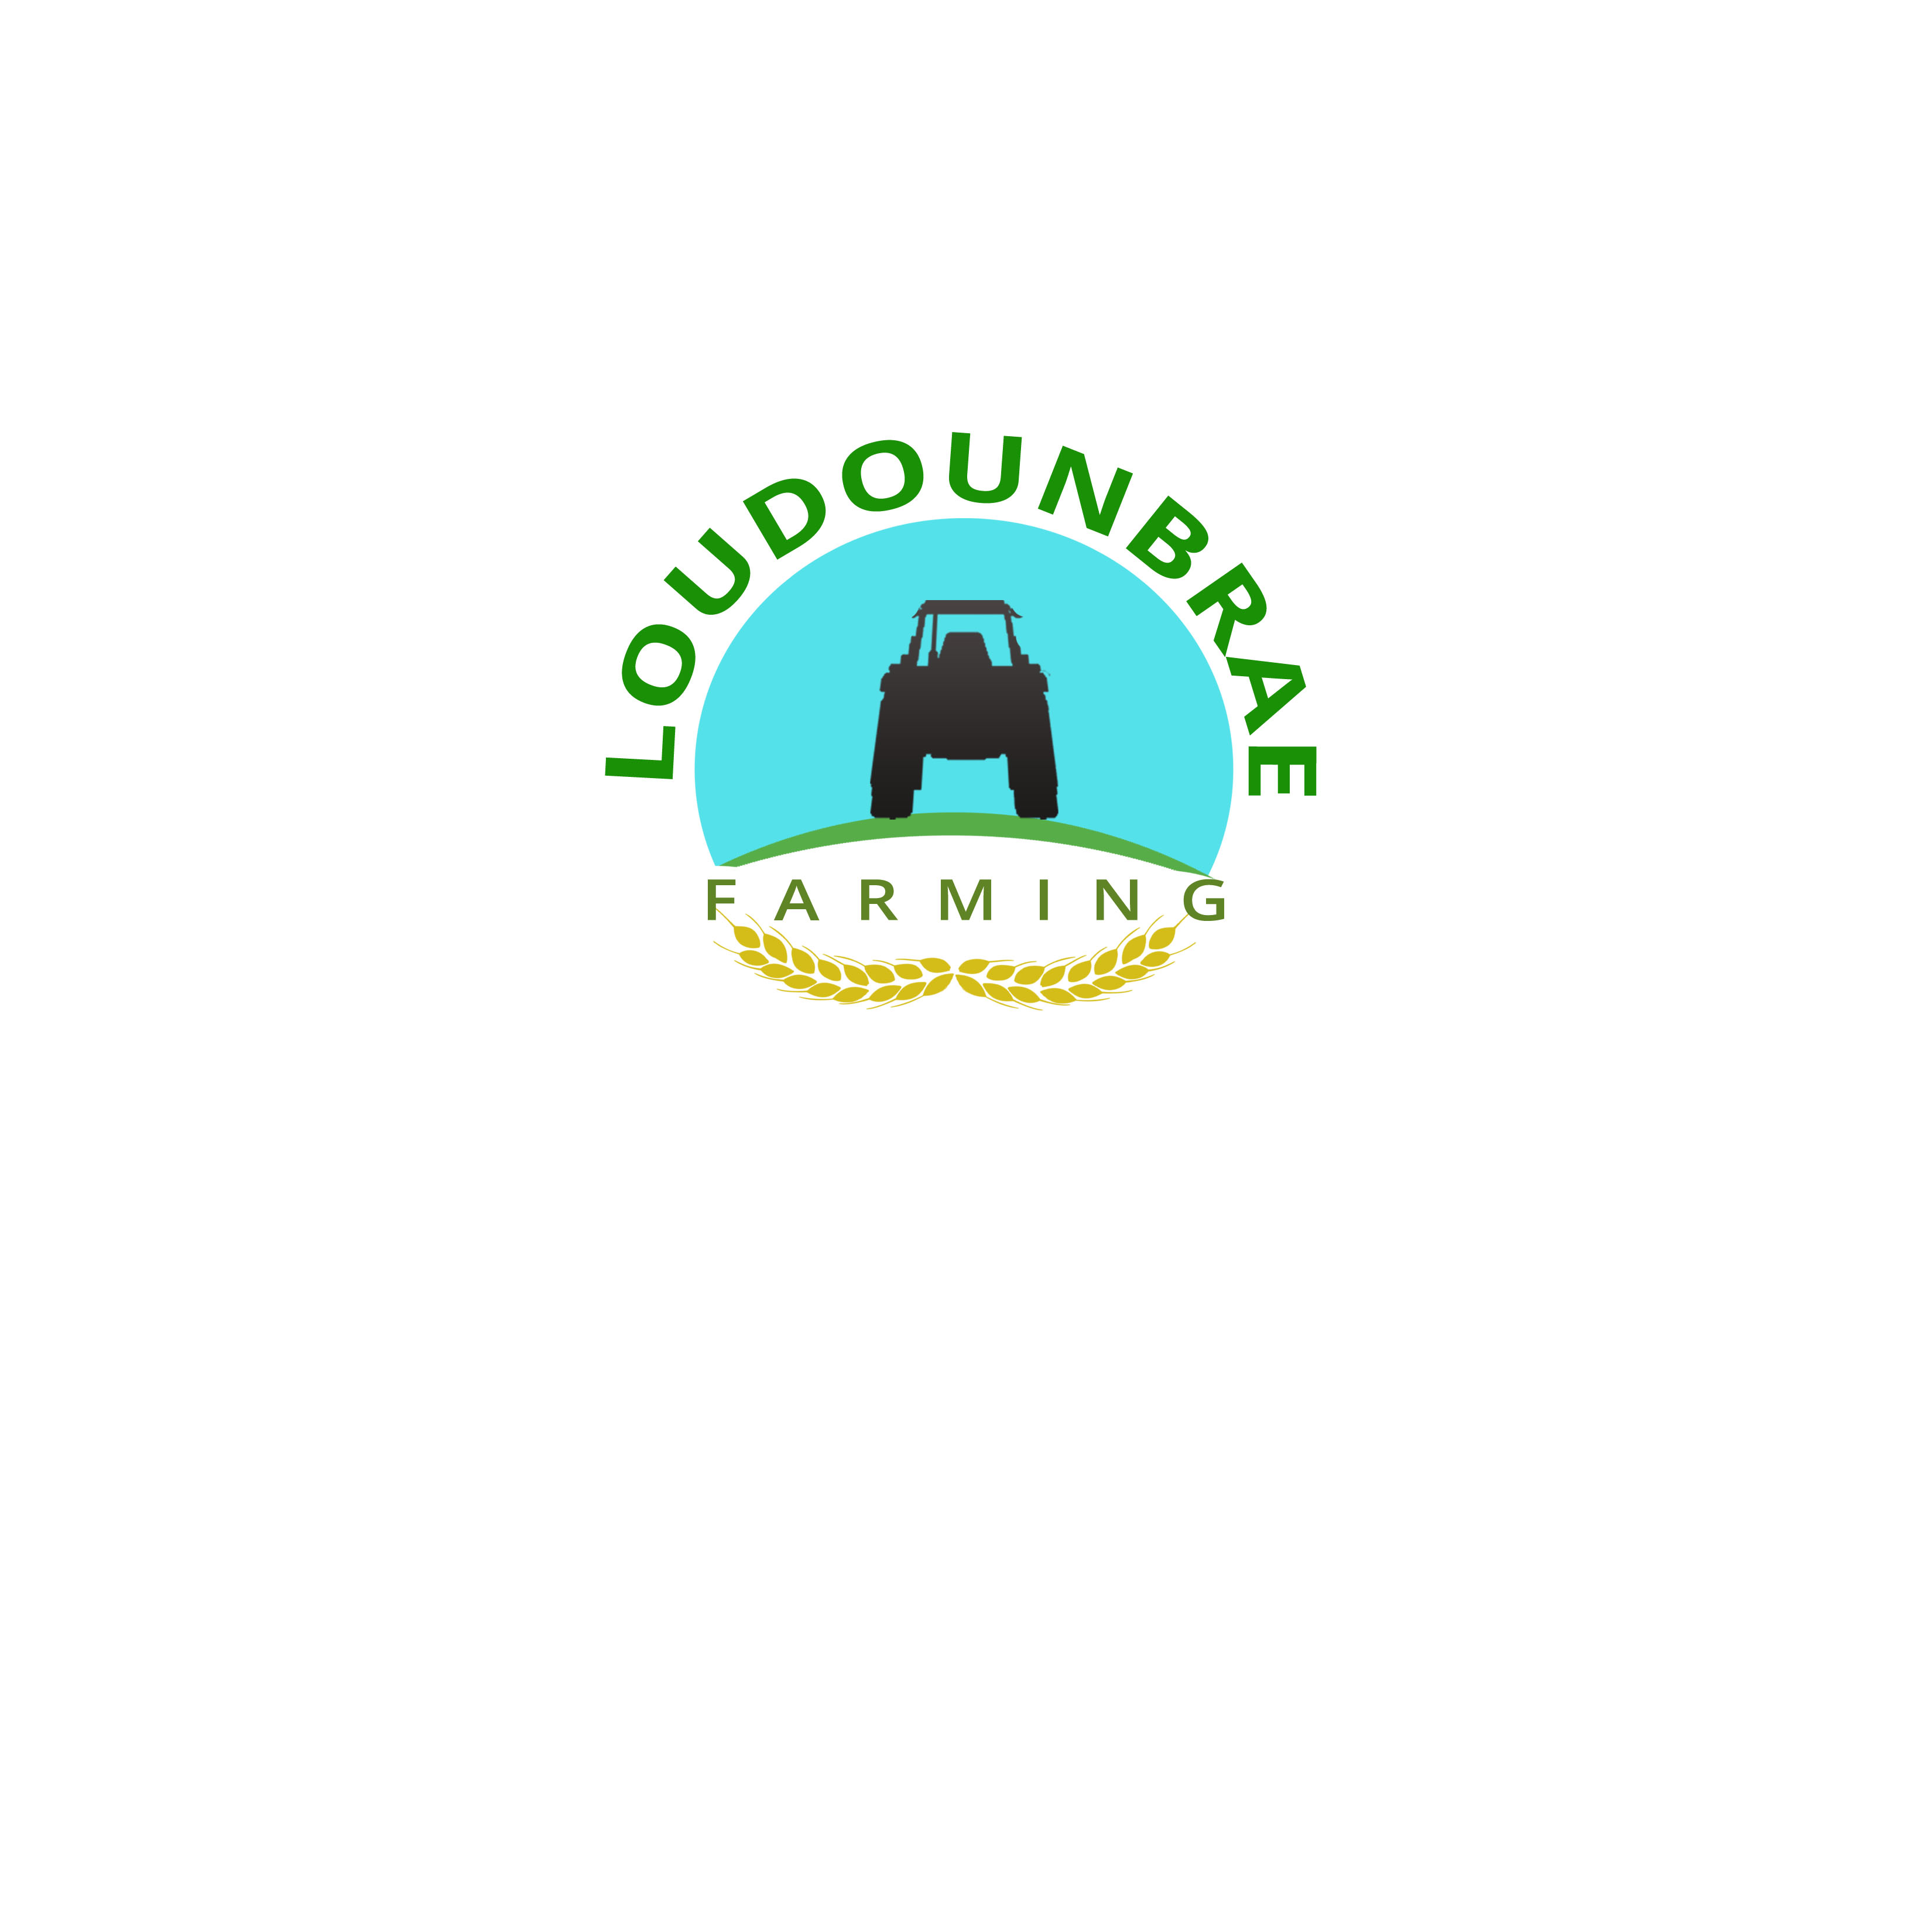 Logo Design by Mary Ann Balantac - Entry No. 24 in the Logo Design Contest Creative Logo Design for Loudounbrae Farming.